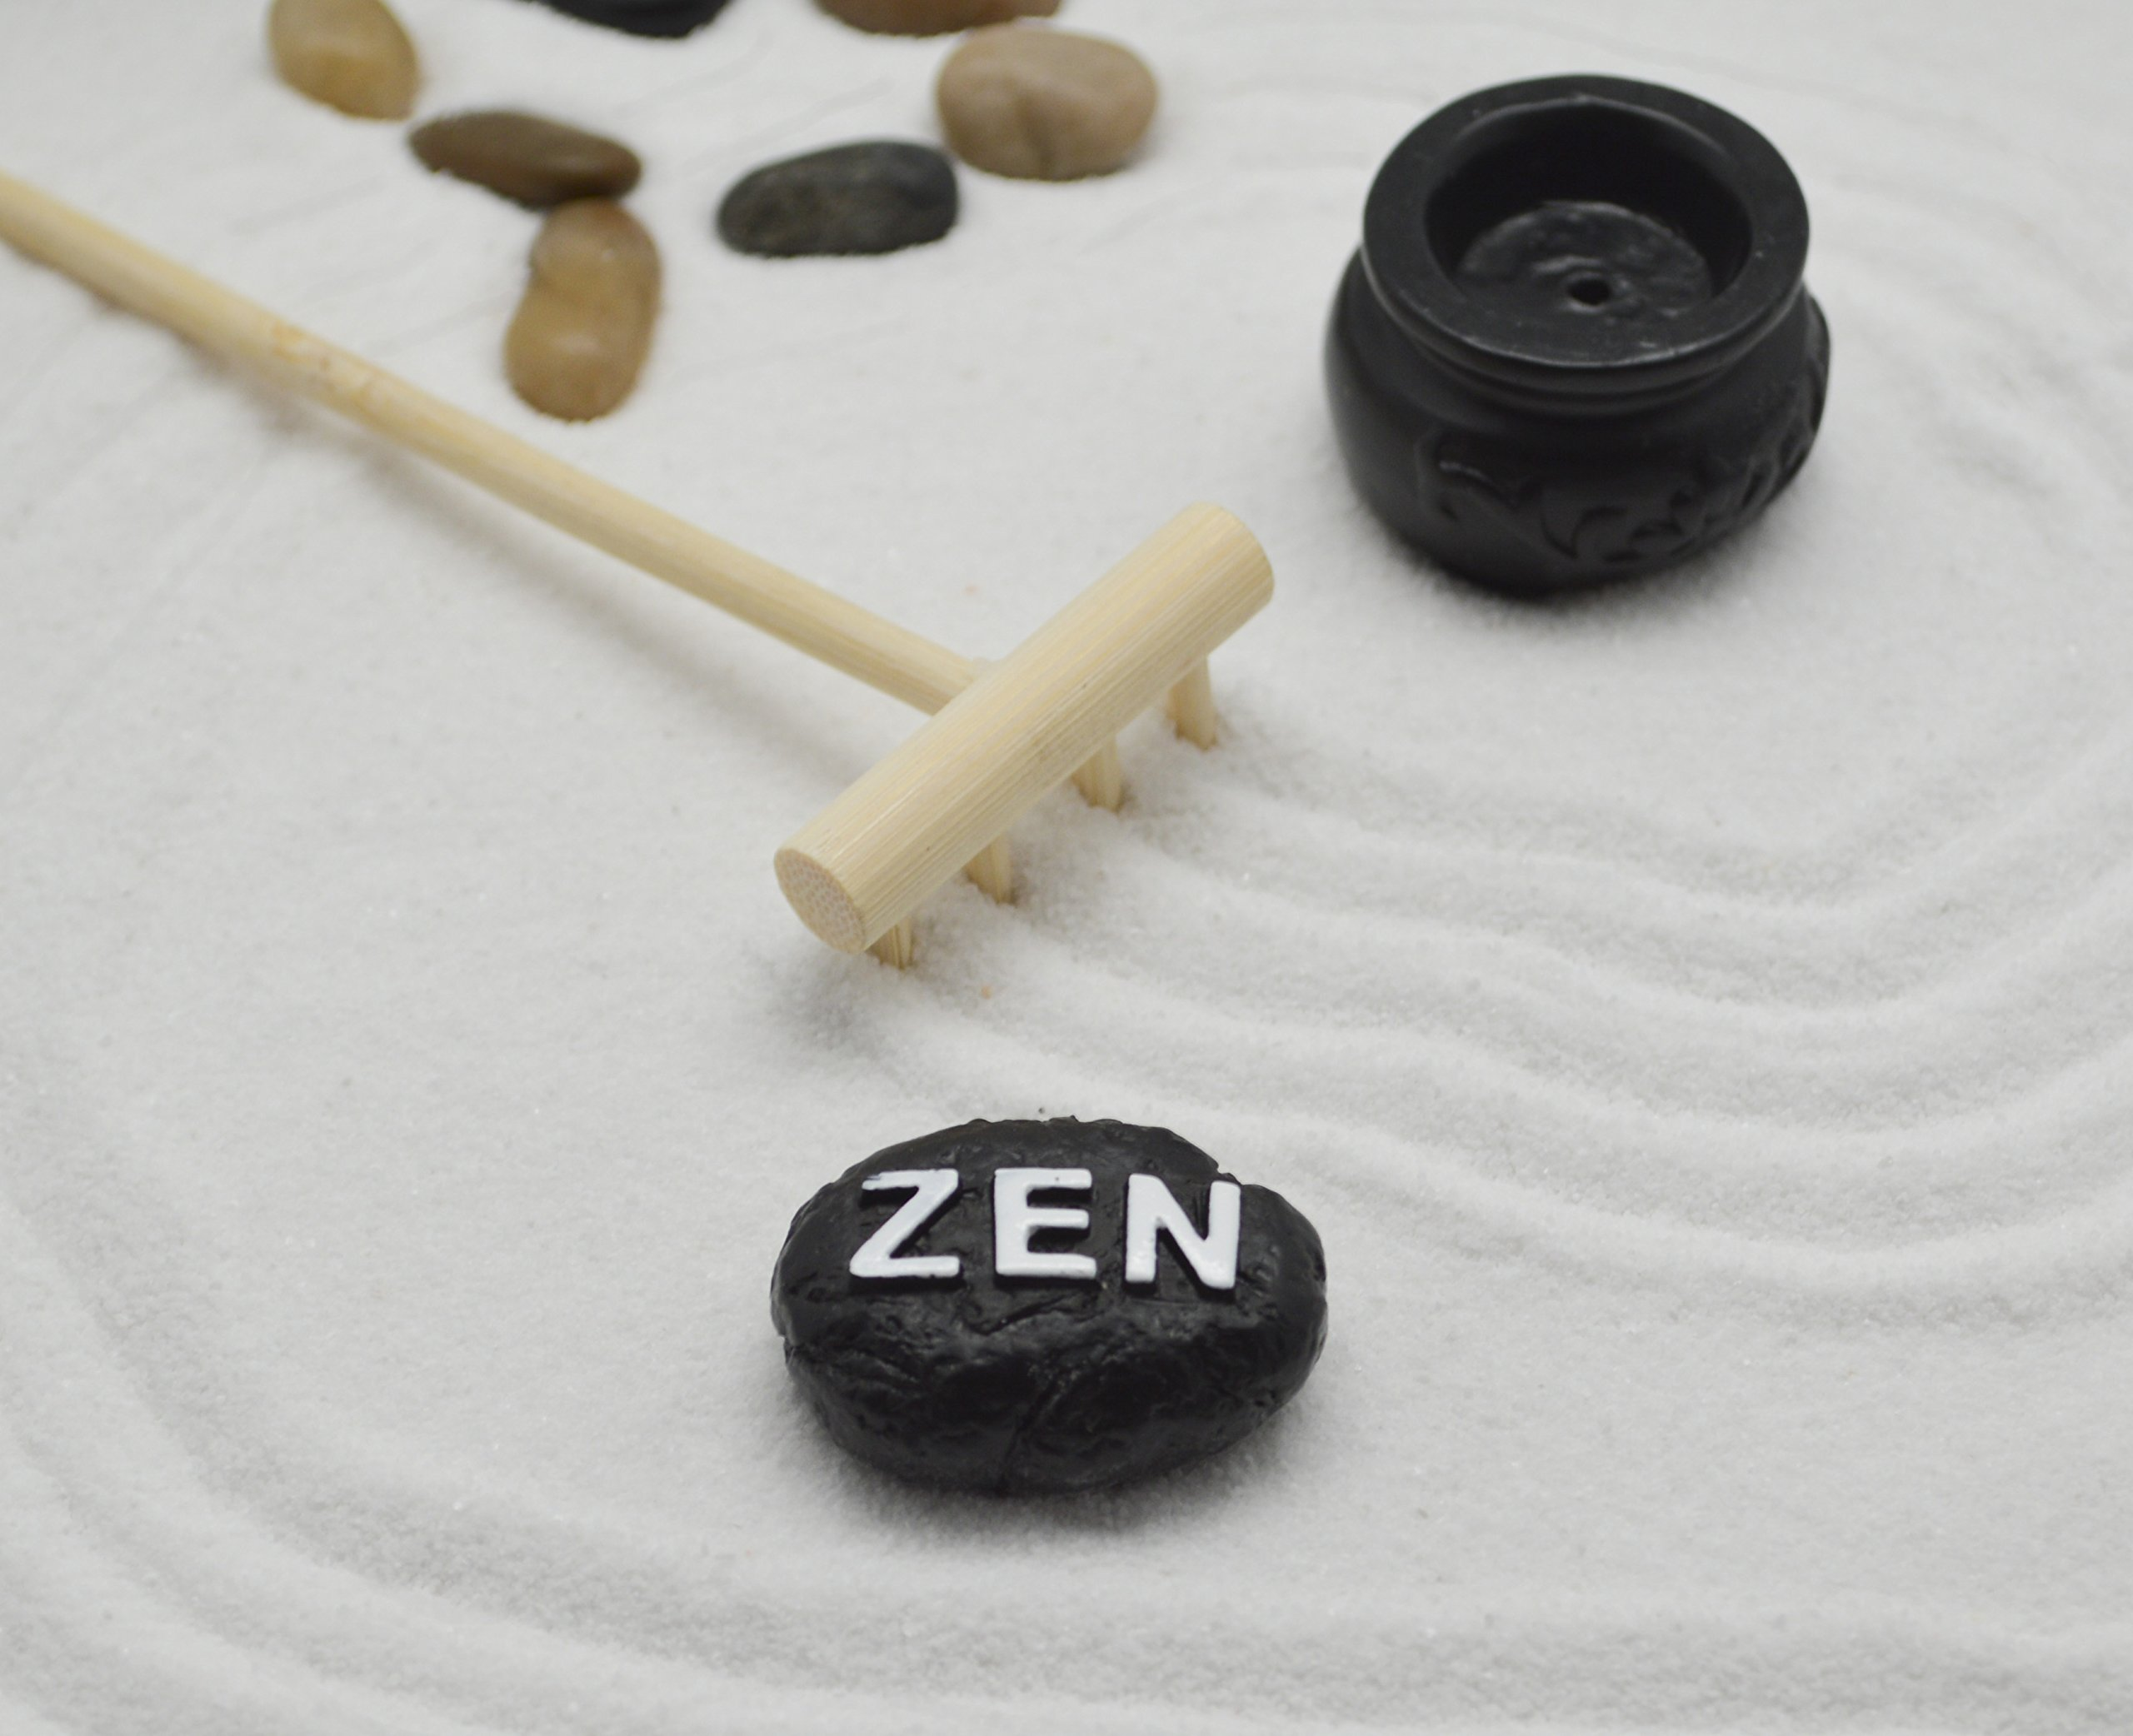 Tabletop Sand Zen Garden with Rocks and rake for Your Desk from Tatum & Shea by Tatum & Shea (Image #2)